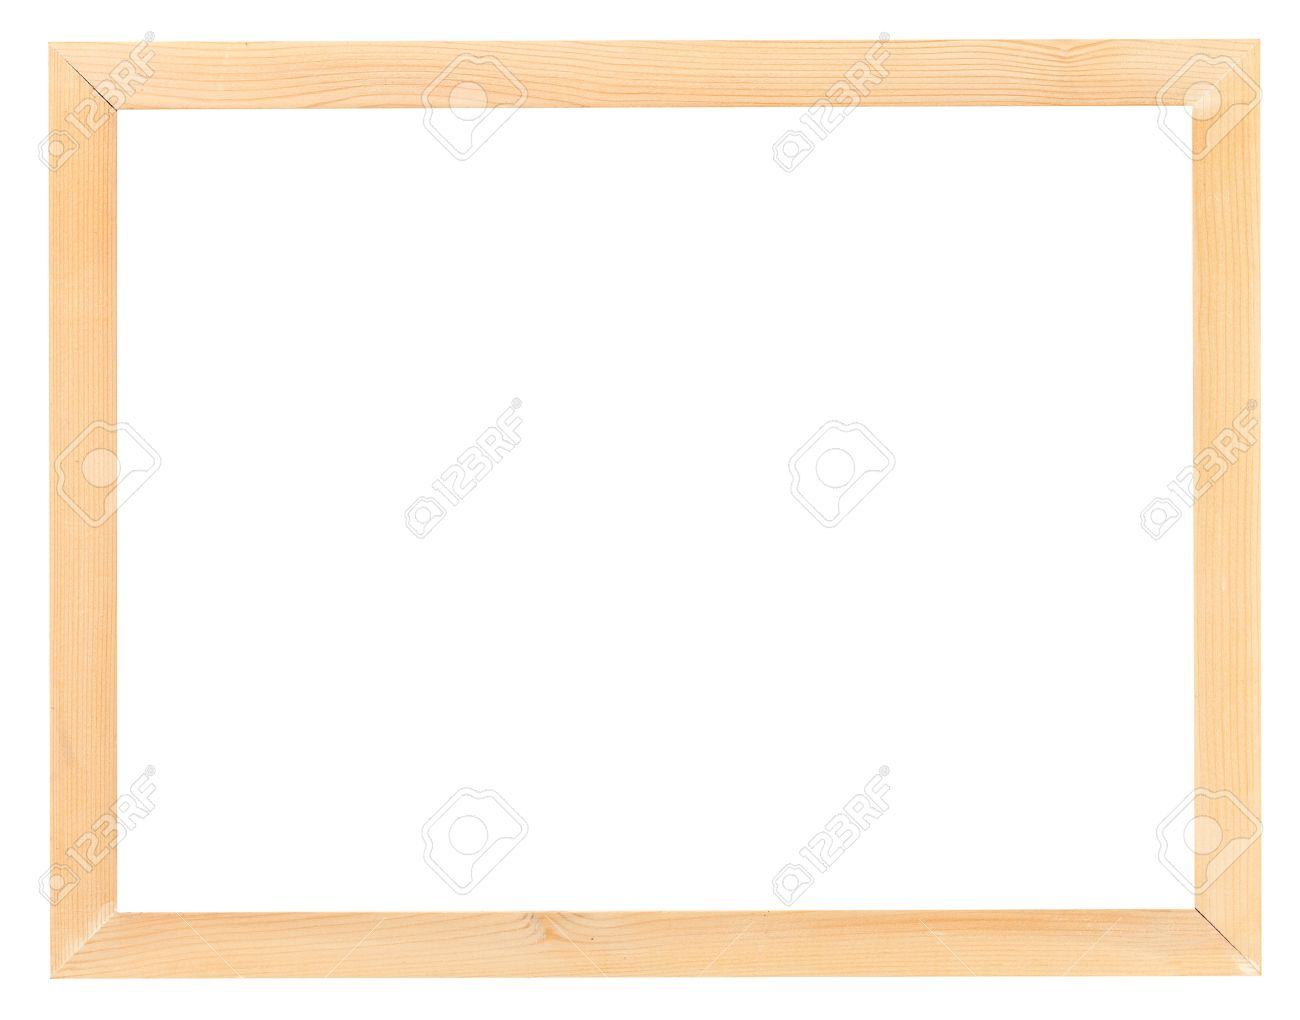 modern wood picture frames. Modern Narrow Light Wood Picture Frame With Cutout Canvas Isolated On White Background Stock Photo - Frames E